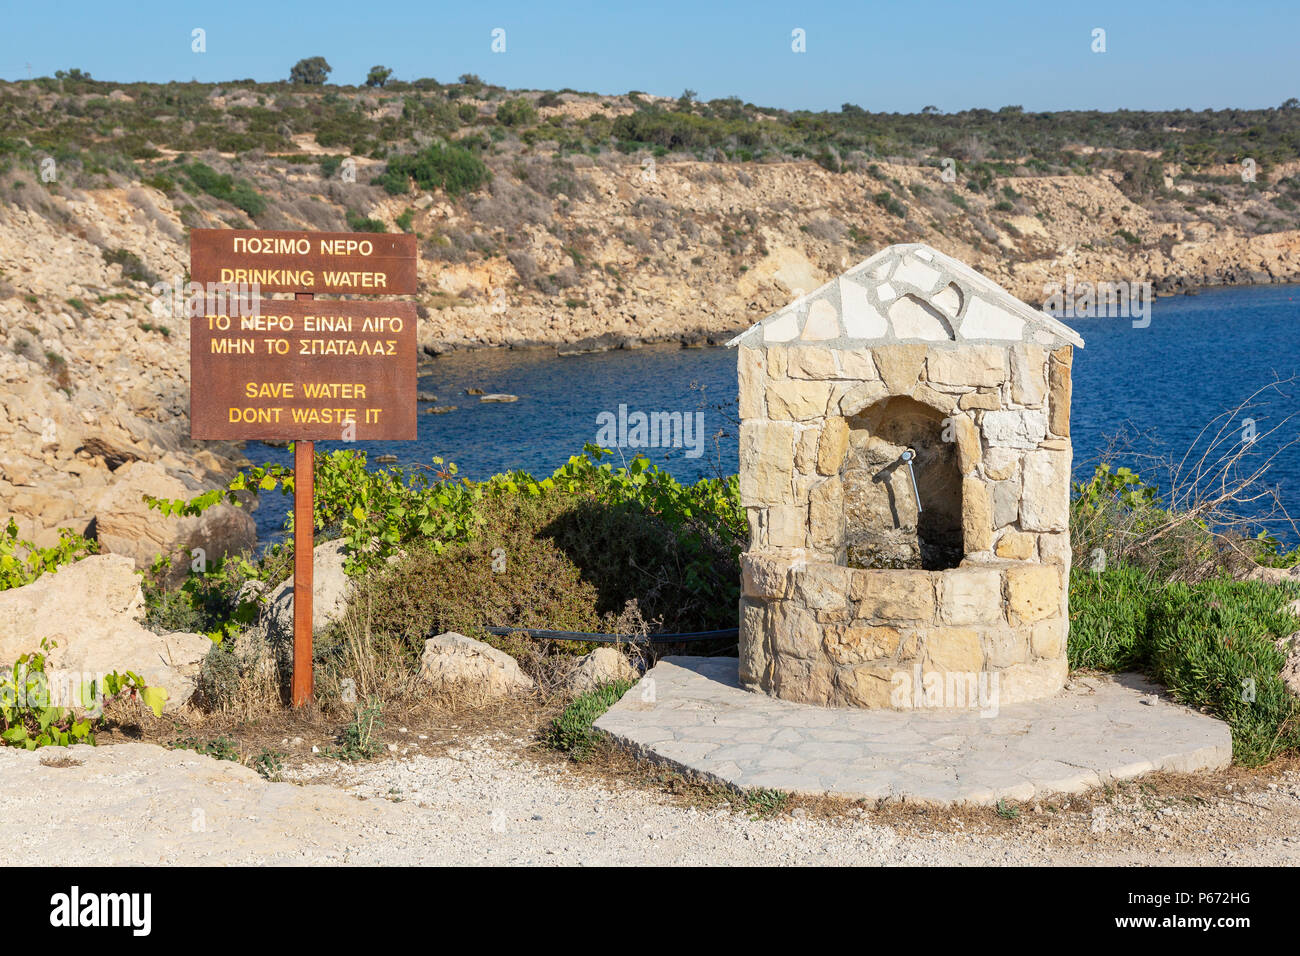 Public water drinking fountain with a warning sign about not wasting water near Korakas Bridge, Cyprus - Stock Image